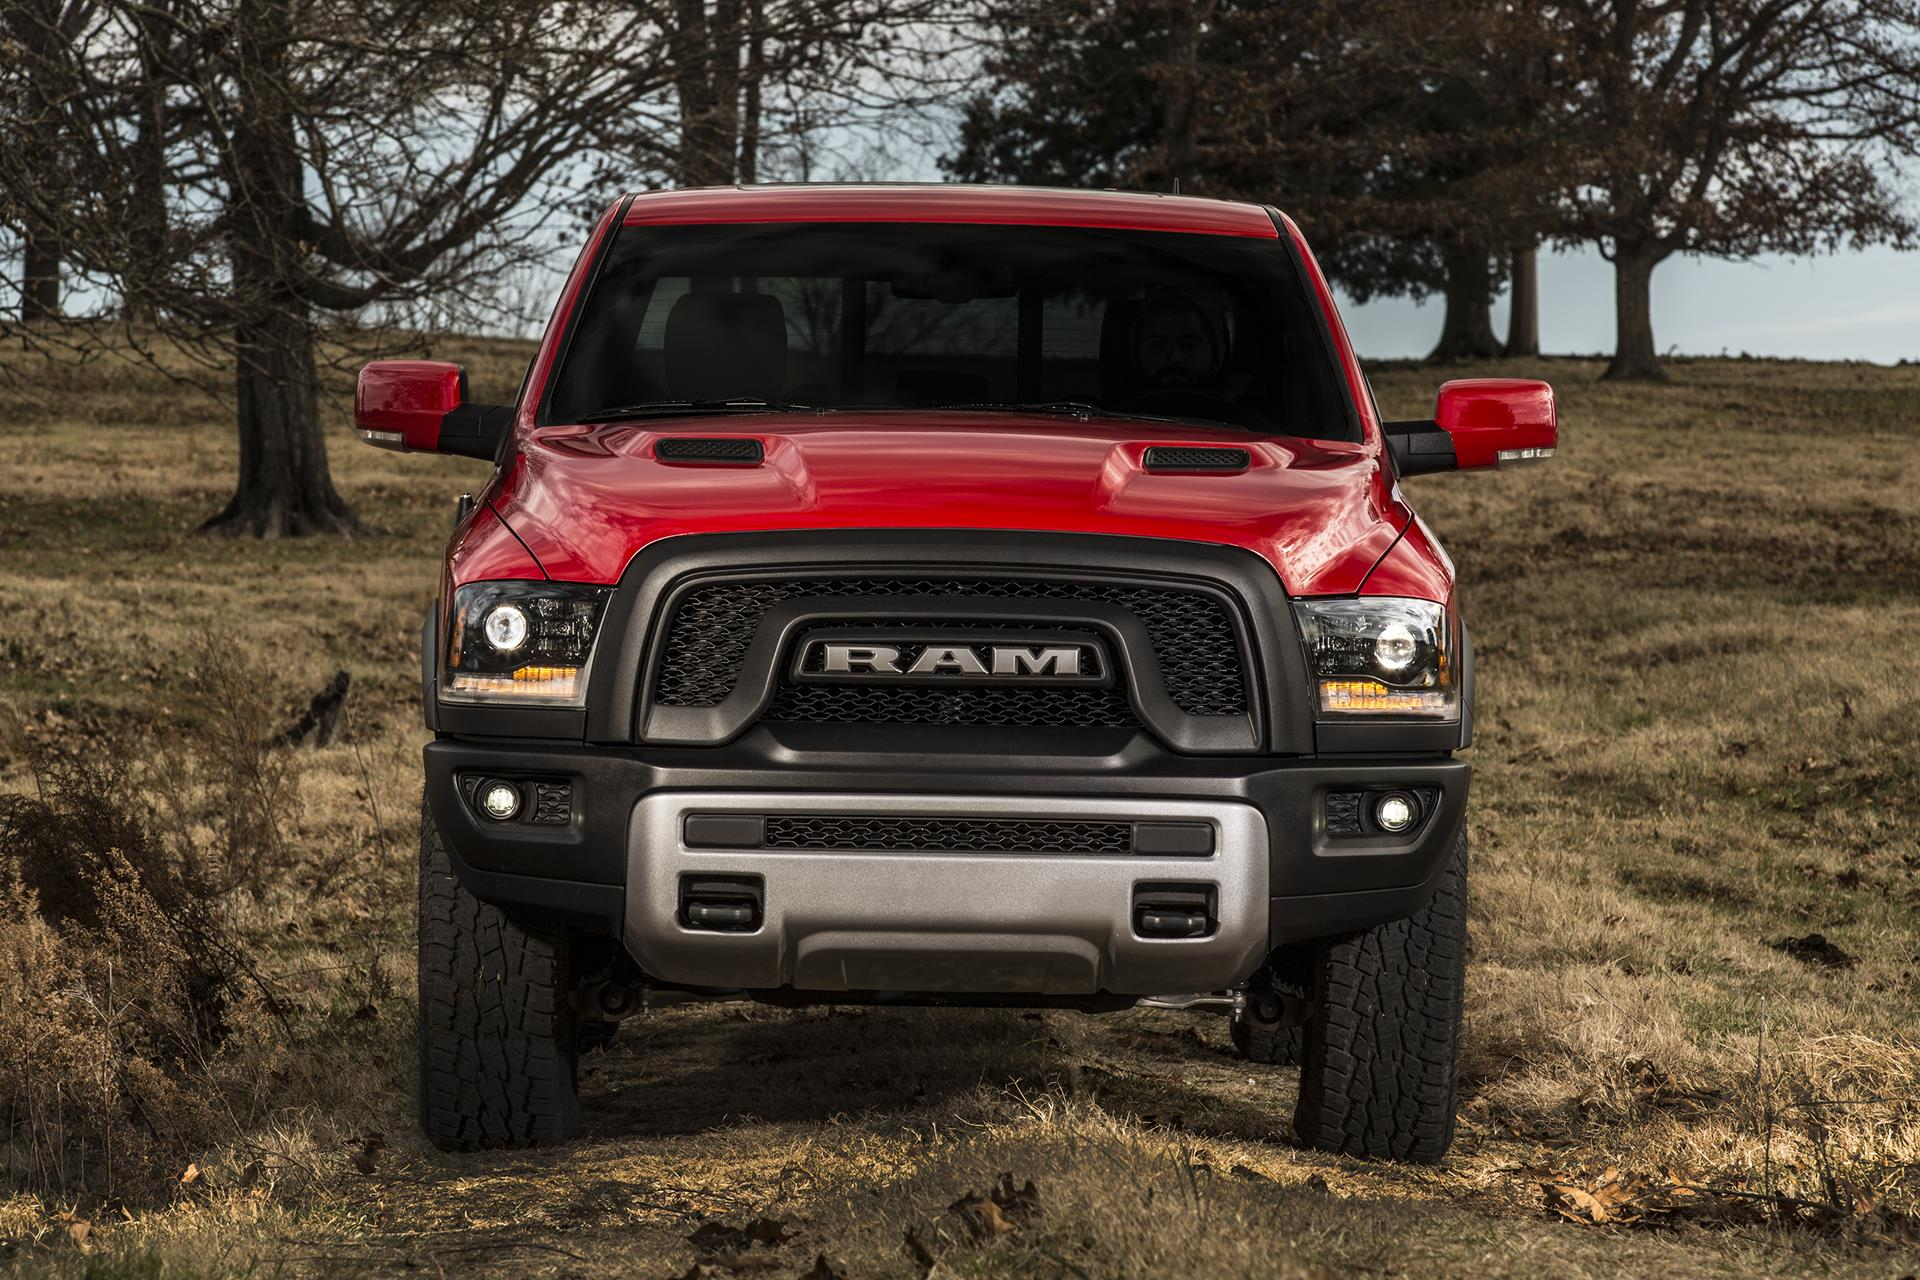 2015 ram rebel. Black Bedroom Furniture Sets. Home Design Ideas